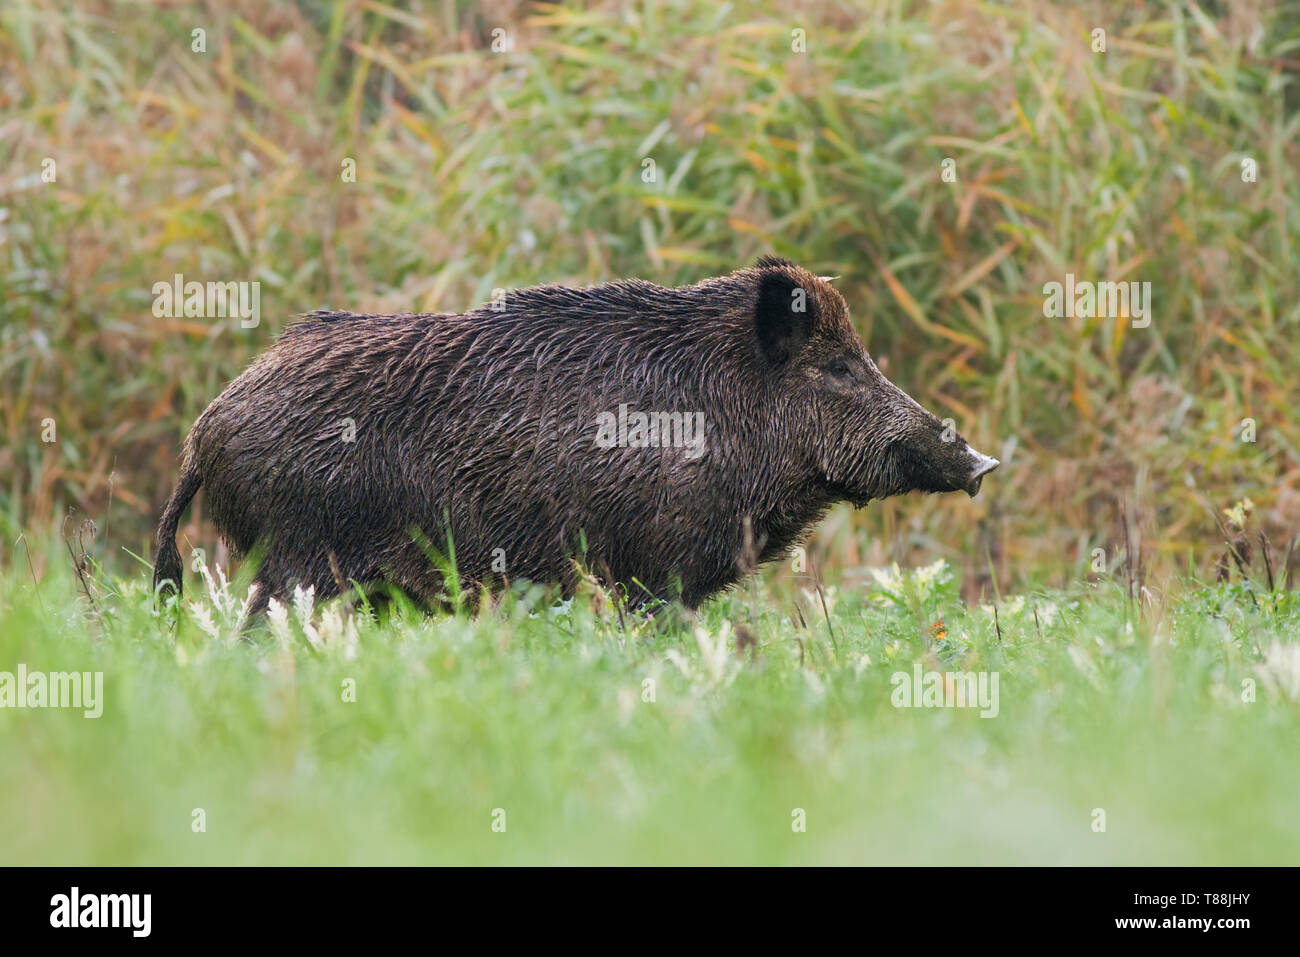 Side view of adult wild boar, sus scrofa, standing on a meadow in green grass in summer with blurred background. Low angle view of wild animal in natu - Stock Image